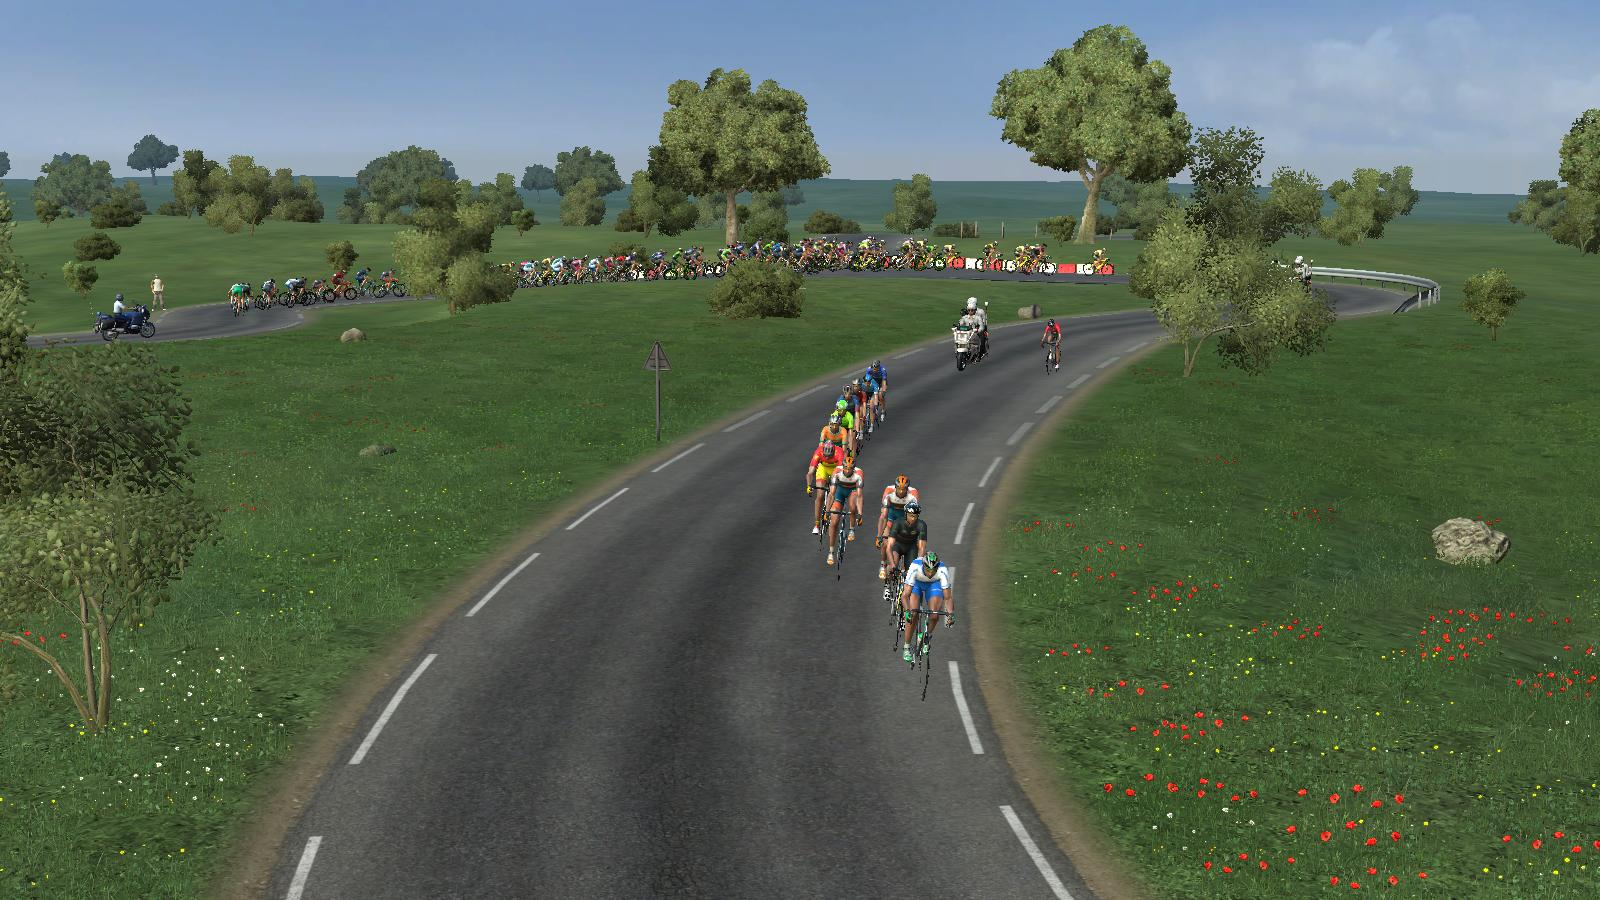 pcmdaily.com/images/mg/2019/Races/PTHC/Rheden/17.jpg